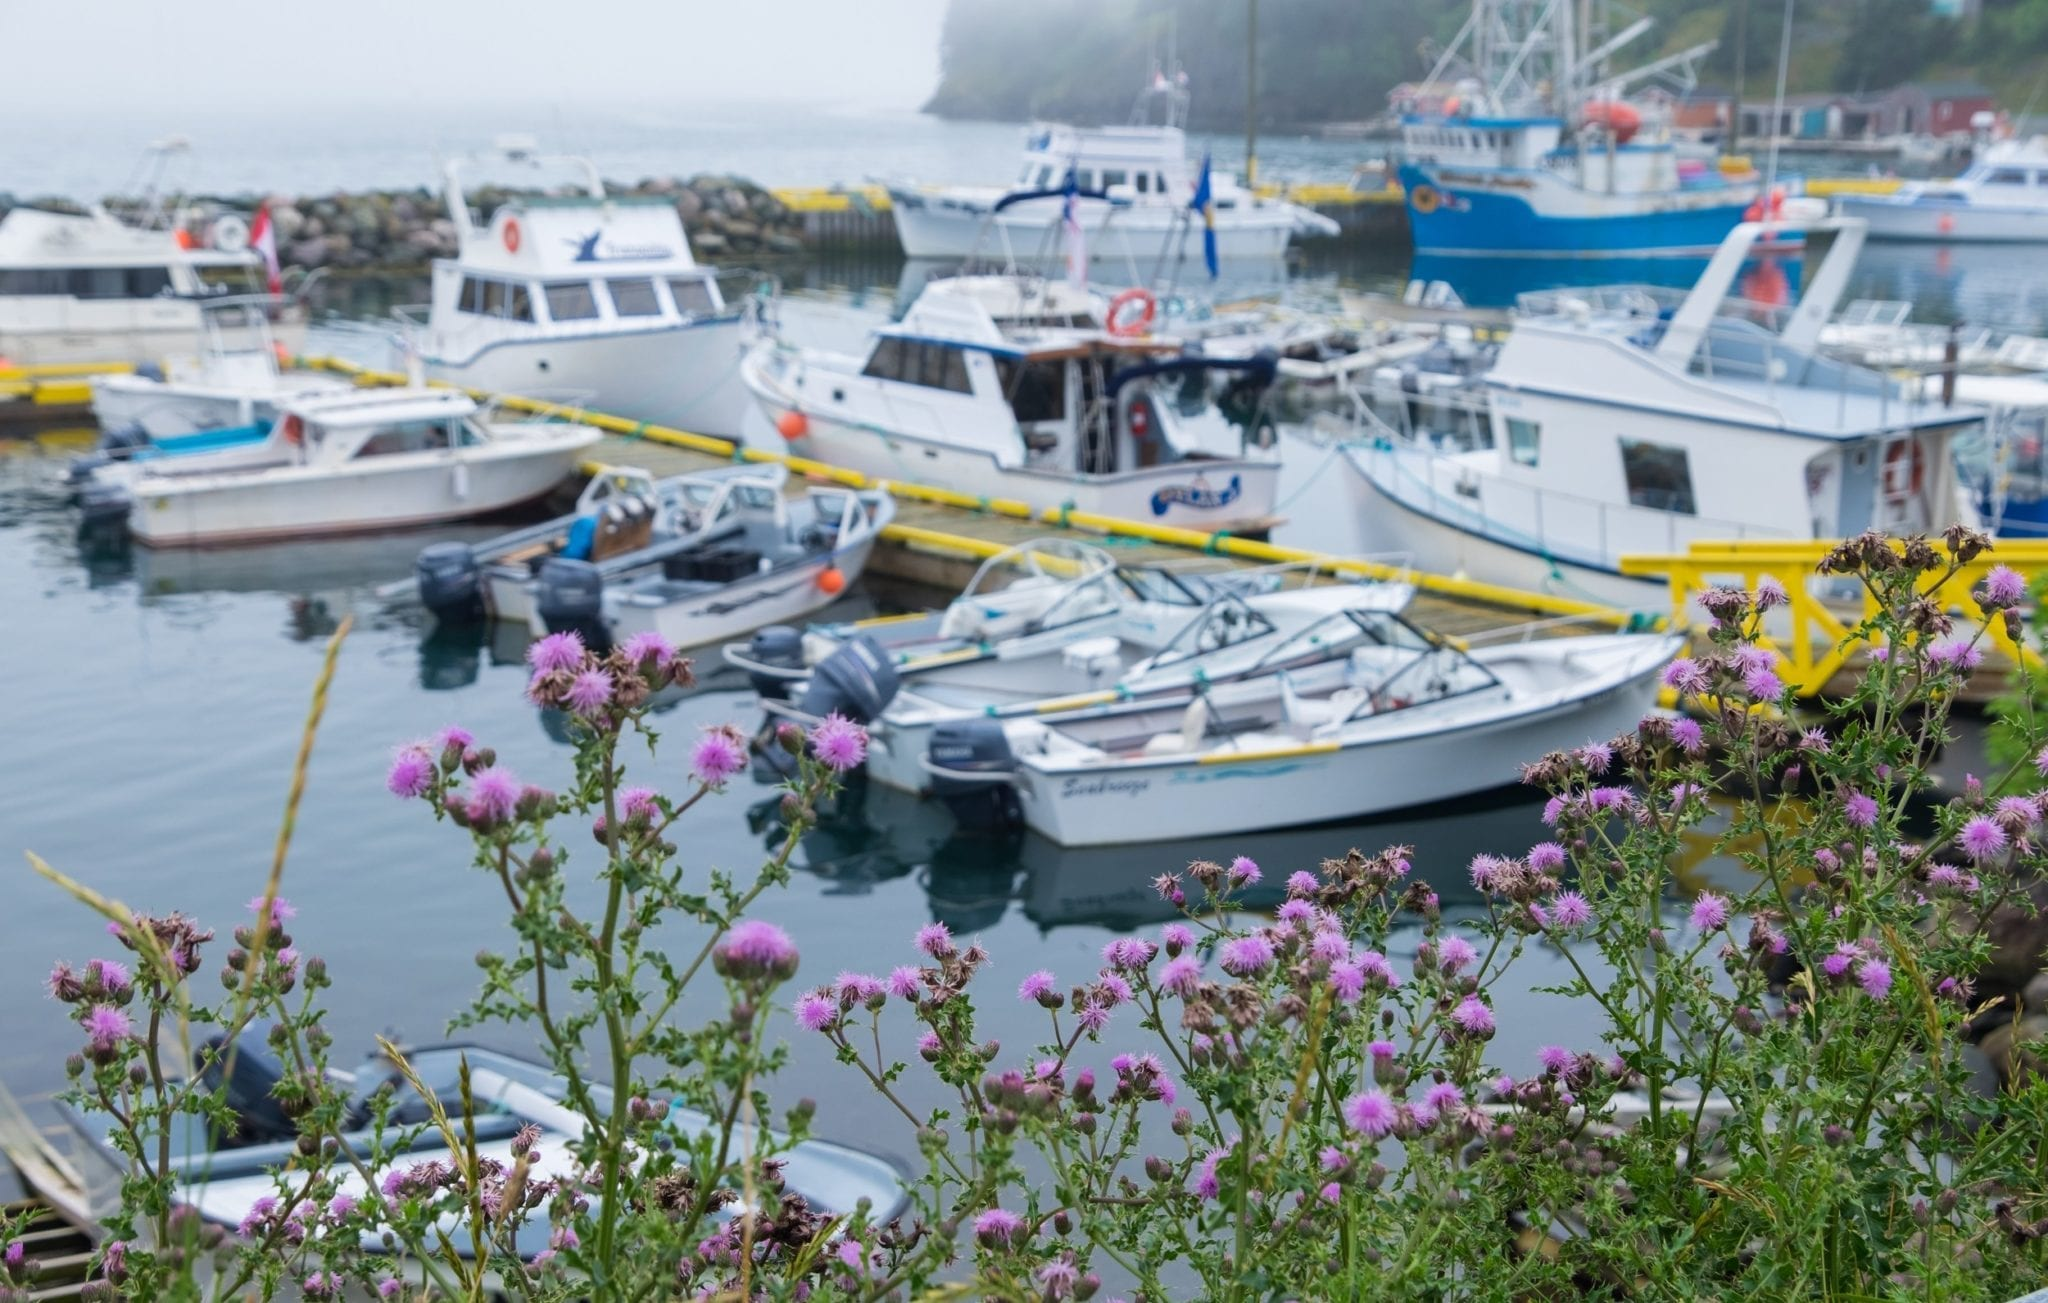 In he foreground, purple flowers on green stems; in the background fishing boats on a gray foggy harbor.